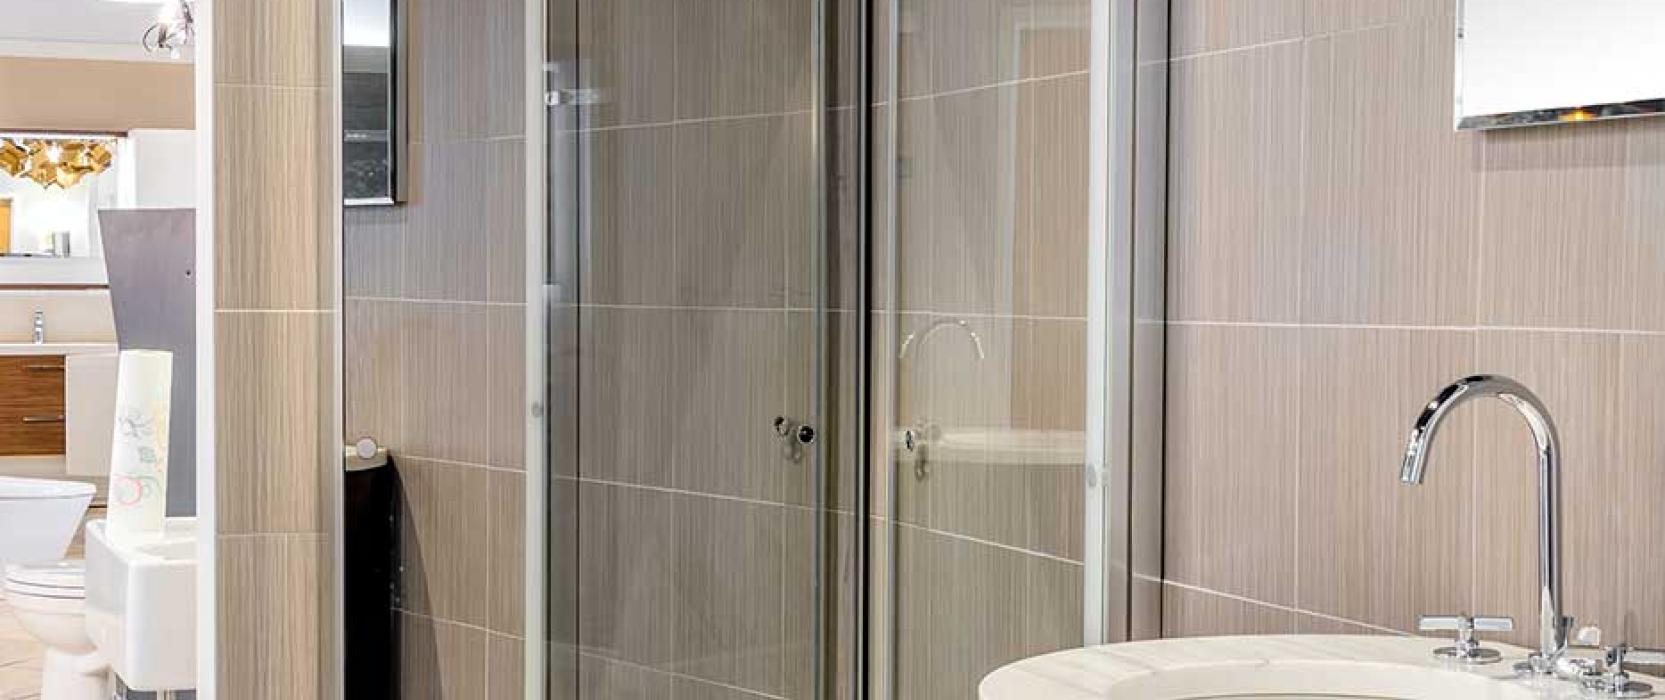 Duravit OpenSpace shower available at Frank Webb Home